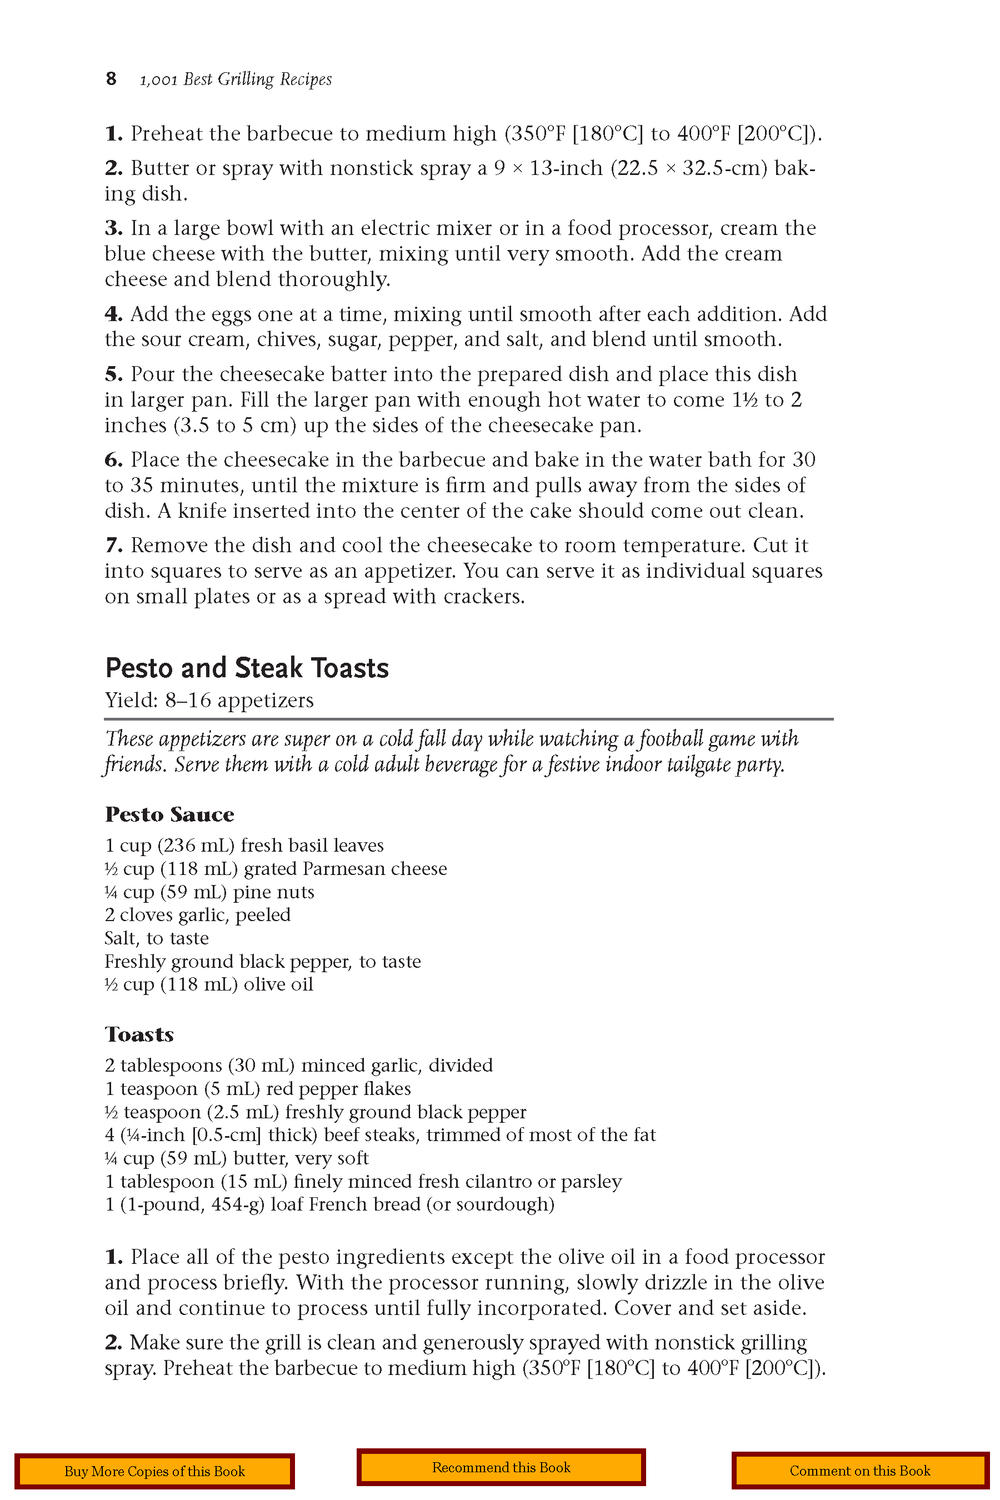 1,001 Best Grilling Recipes_Page_10.png